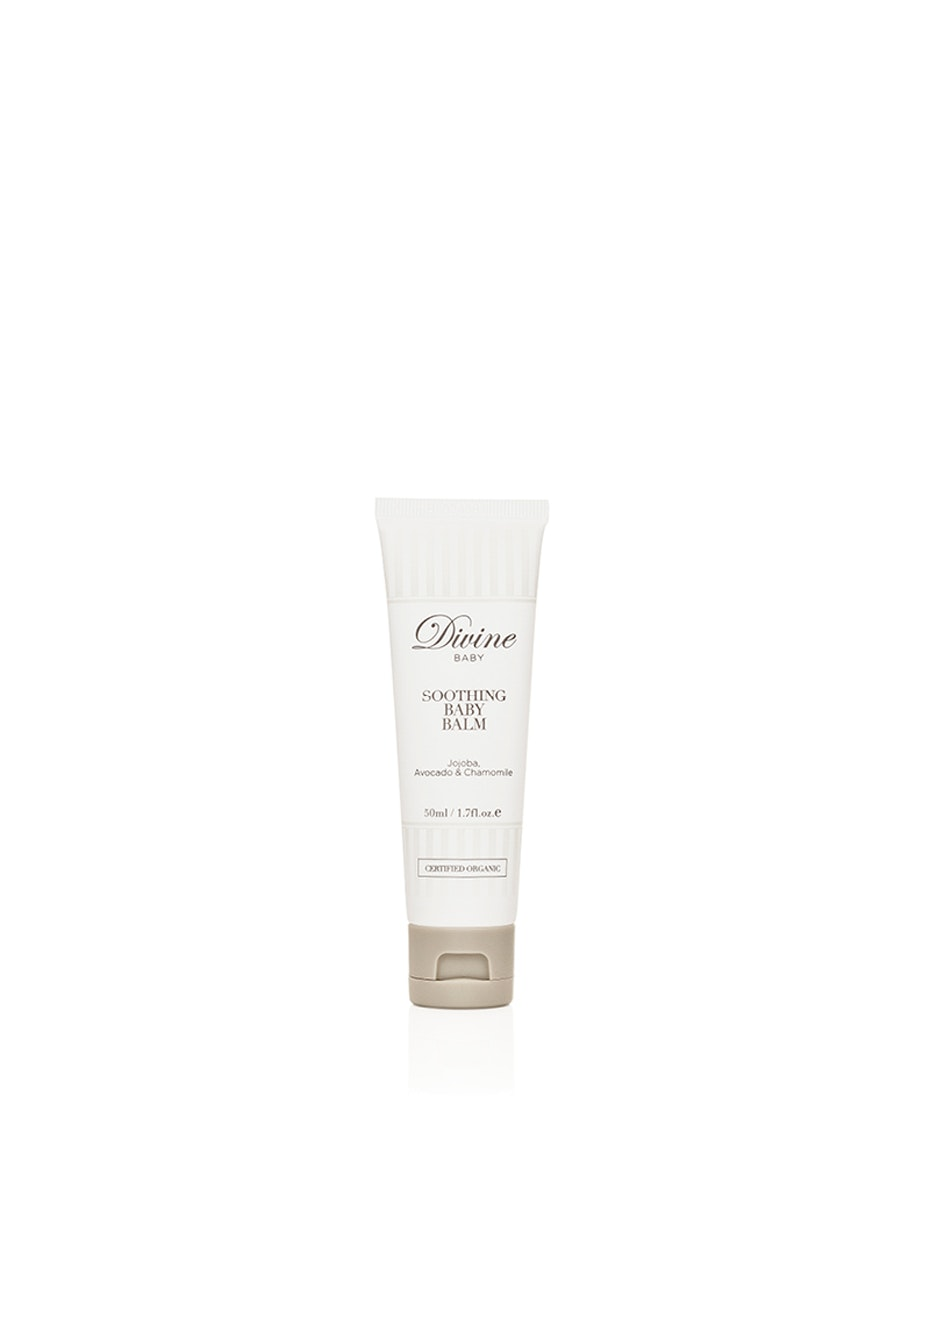 Divine Baby - Soothing Baby Balm 50ml